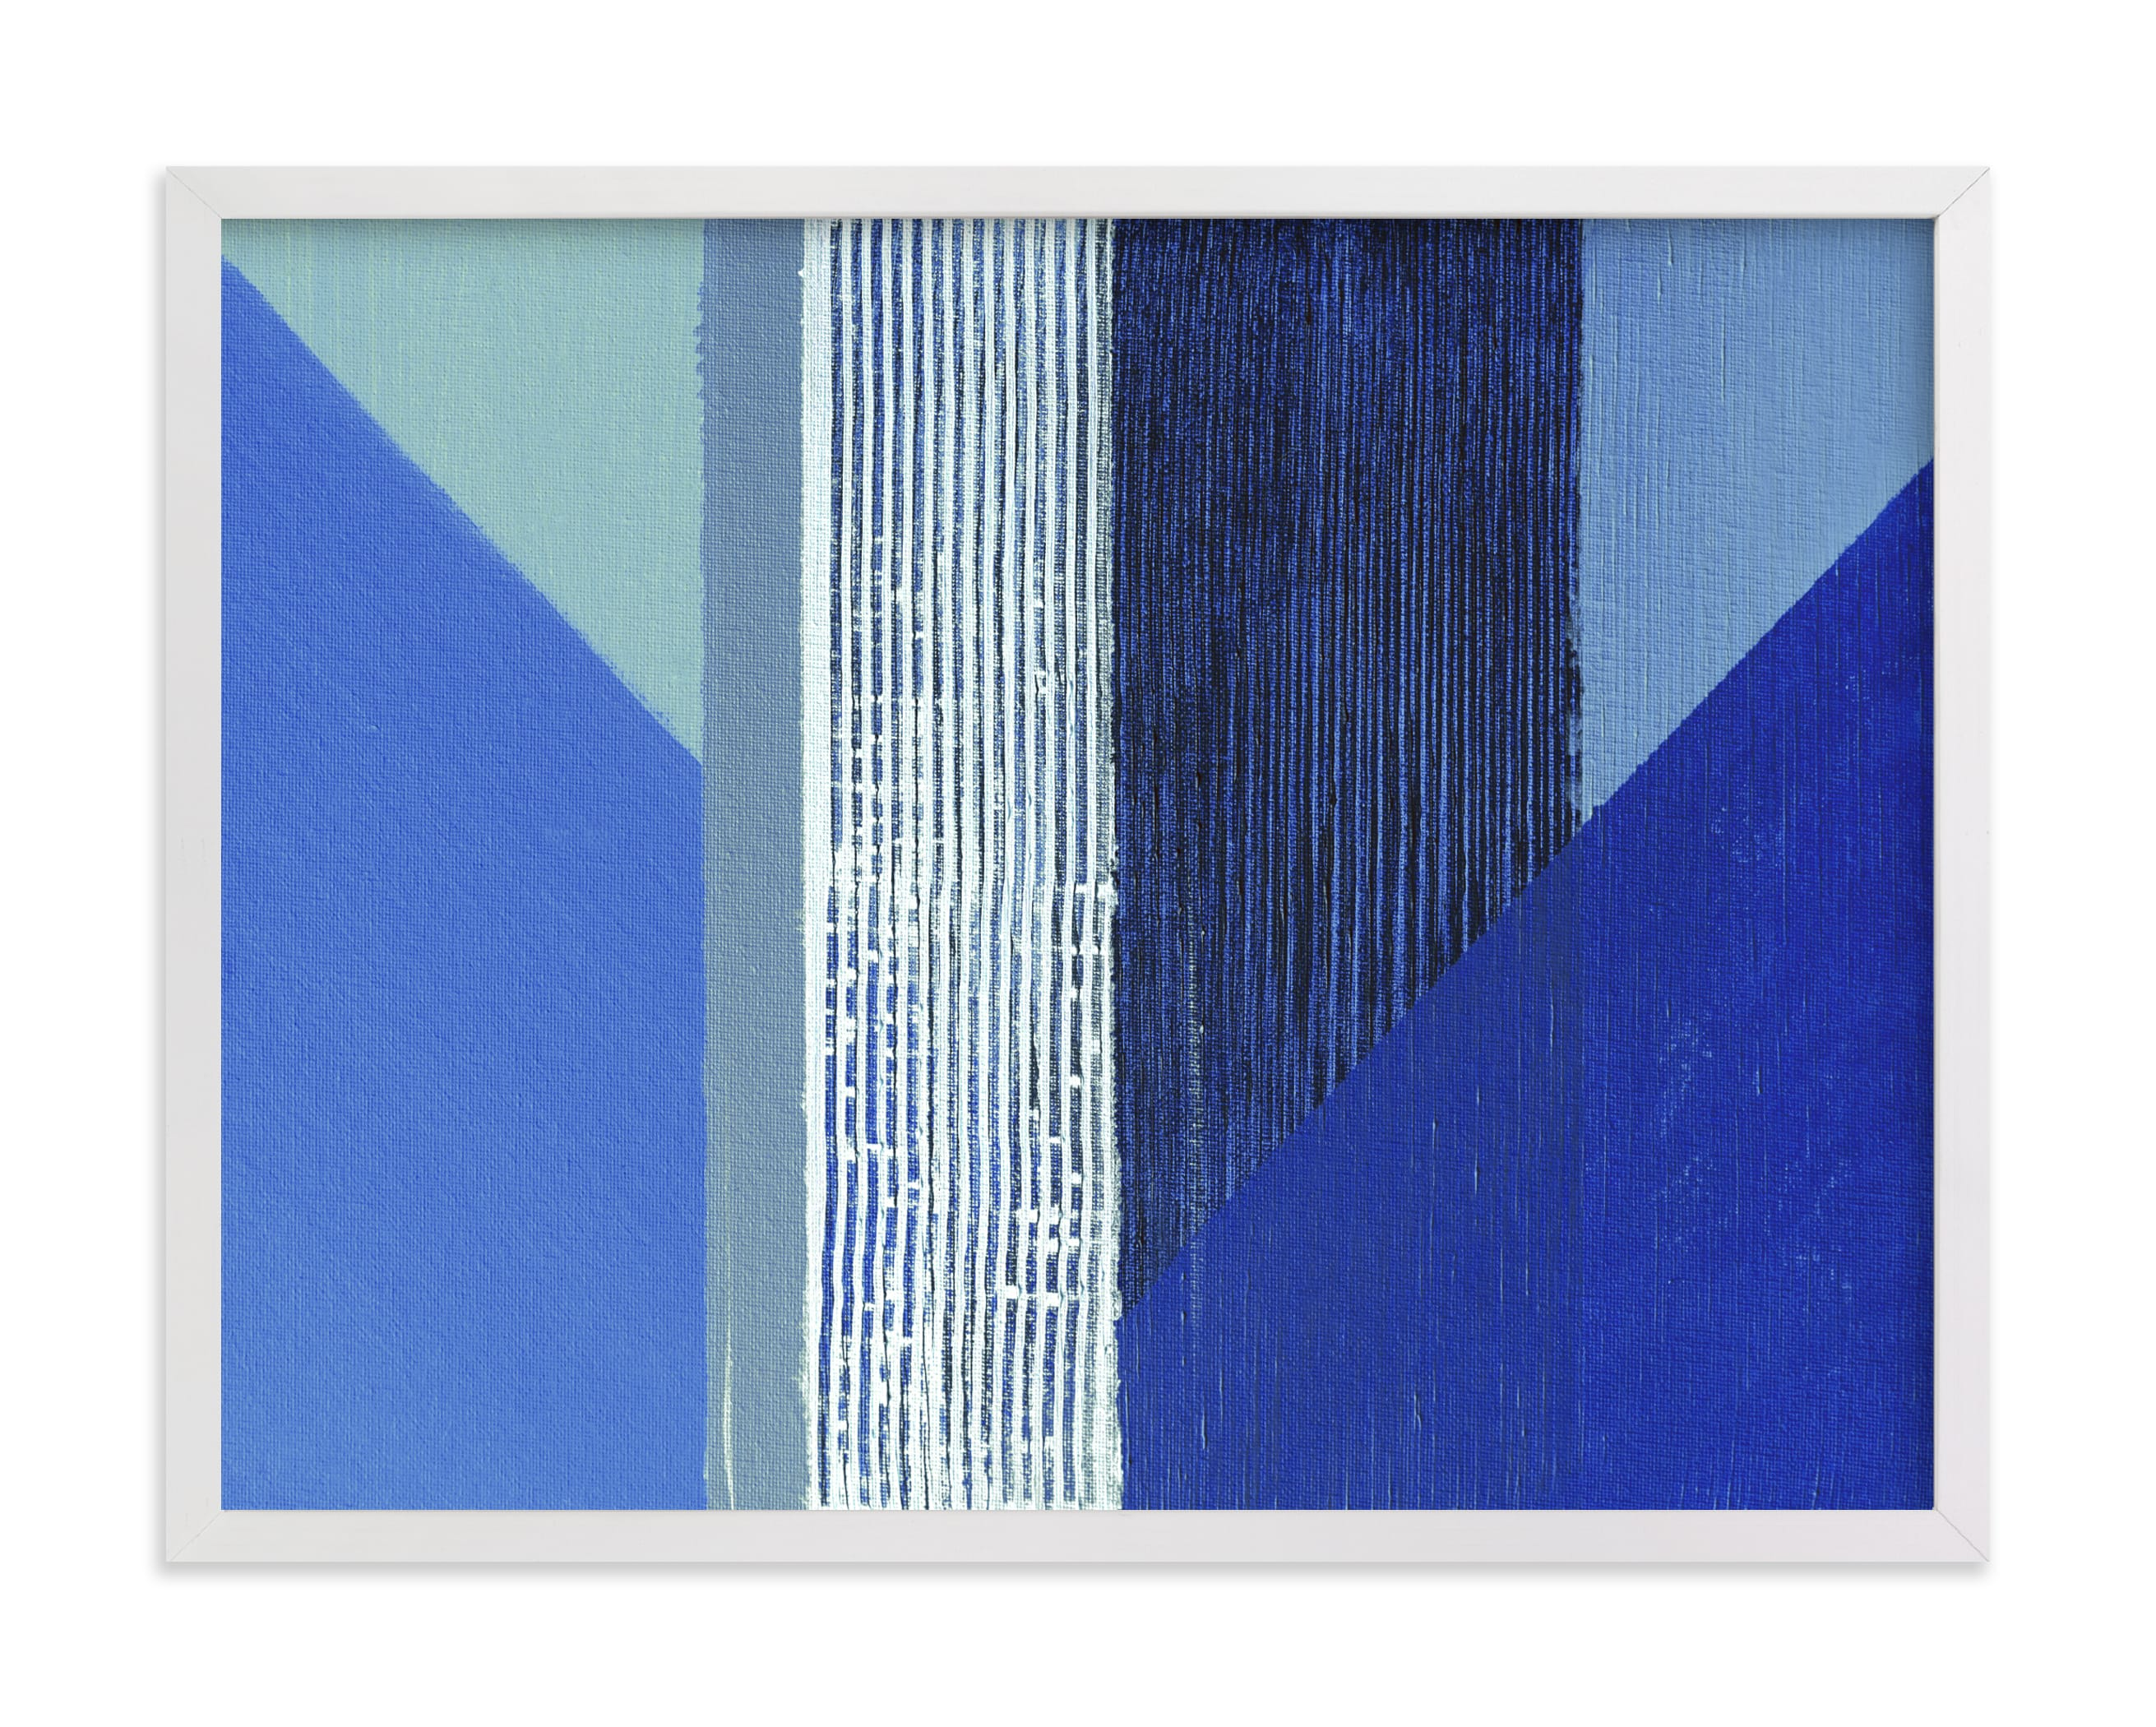 This is a blue art by Jen Florentine called Hues.